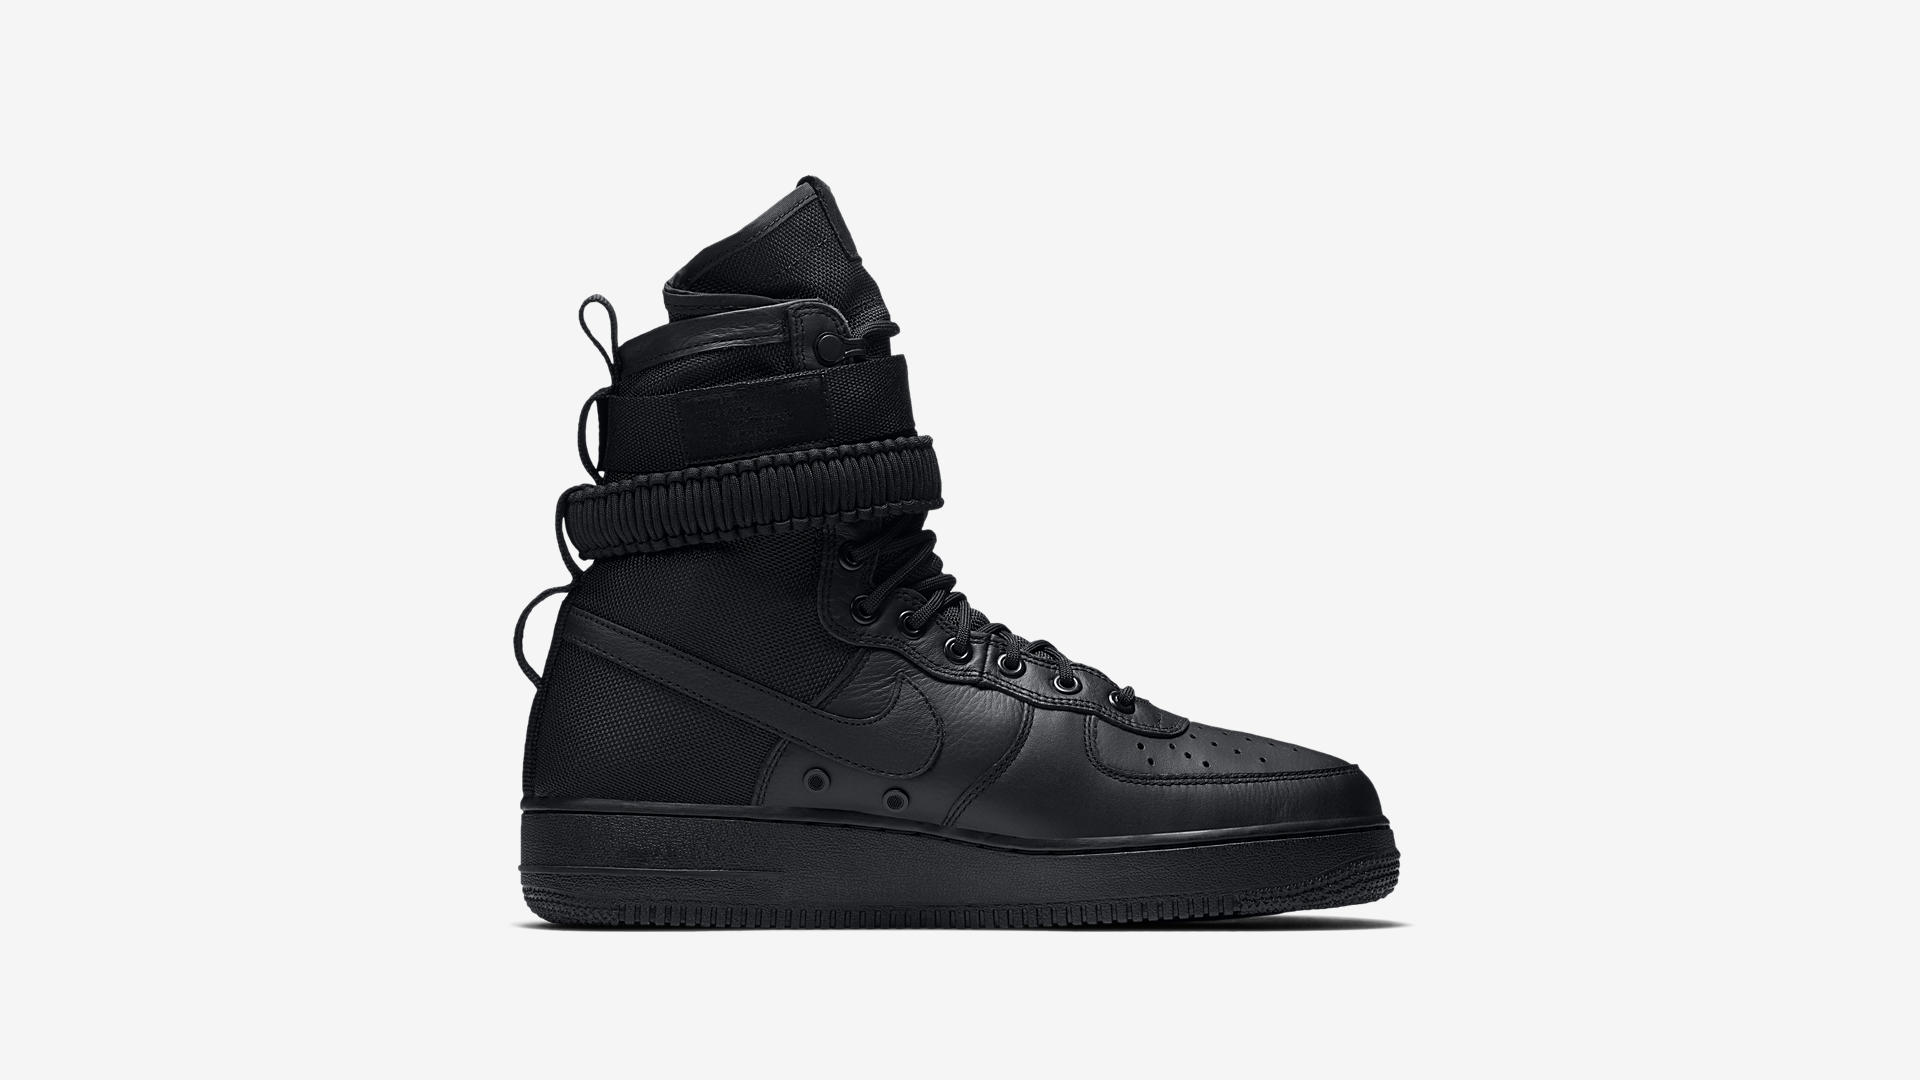 864024 003 Nike SF Air Force 1 Triple Black 4